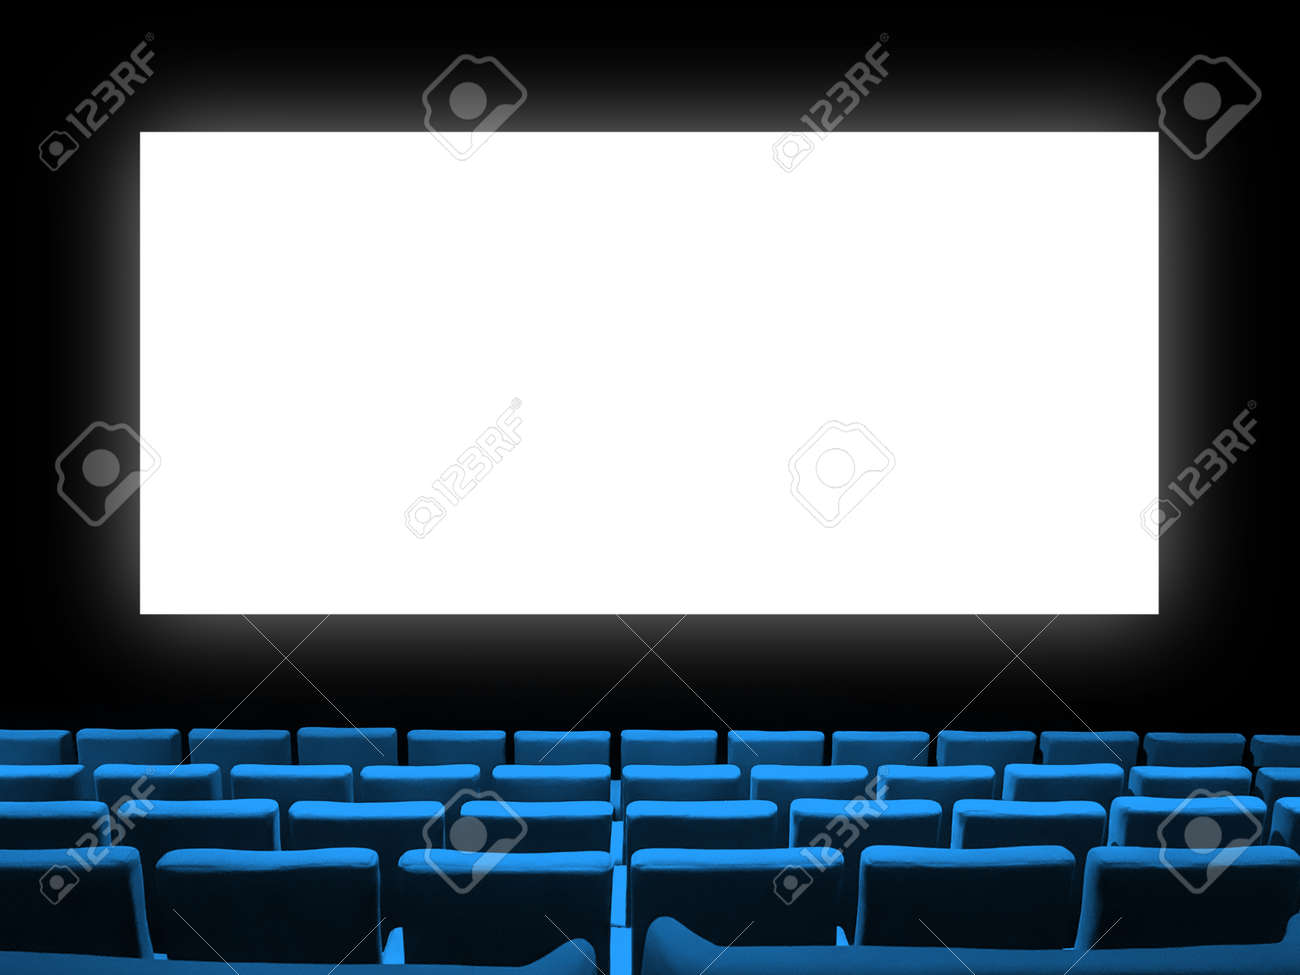 Cinema movie theatre with blue velvet seats and a blank white screen. Copy space background - 167384951